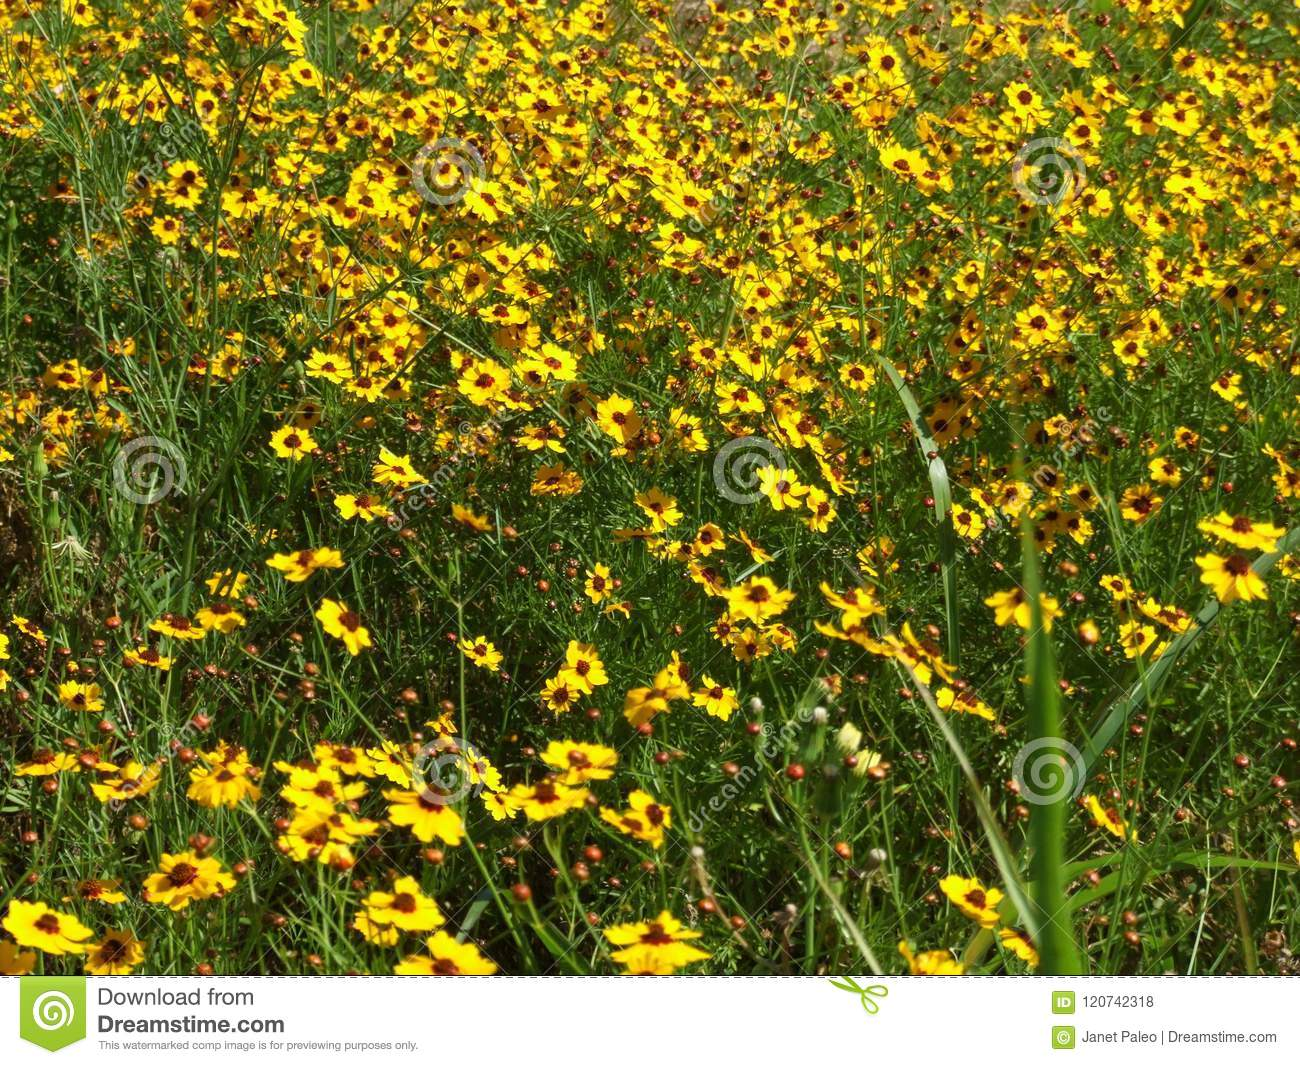 Multiple yellow spring flowers in grassy plains stock photo image download multiple yellow spring flowers in grassy plains stock photo image of texas mightylinksfo